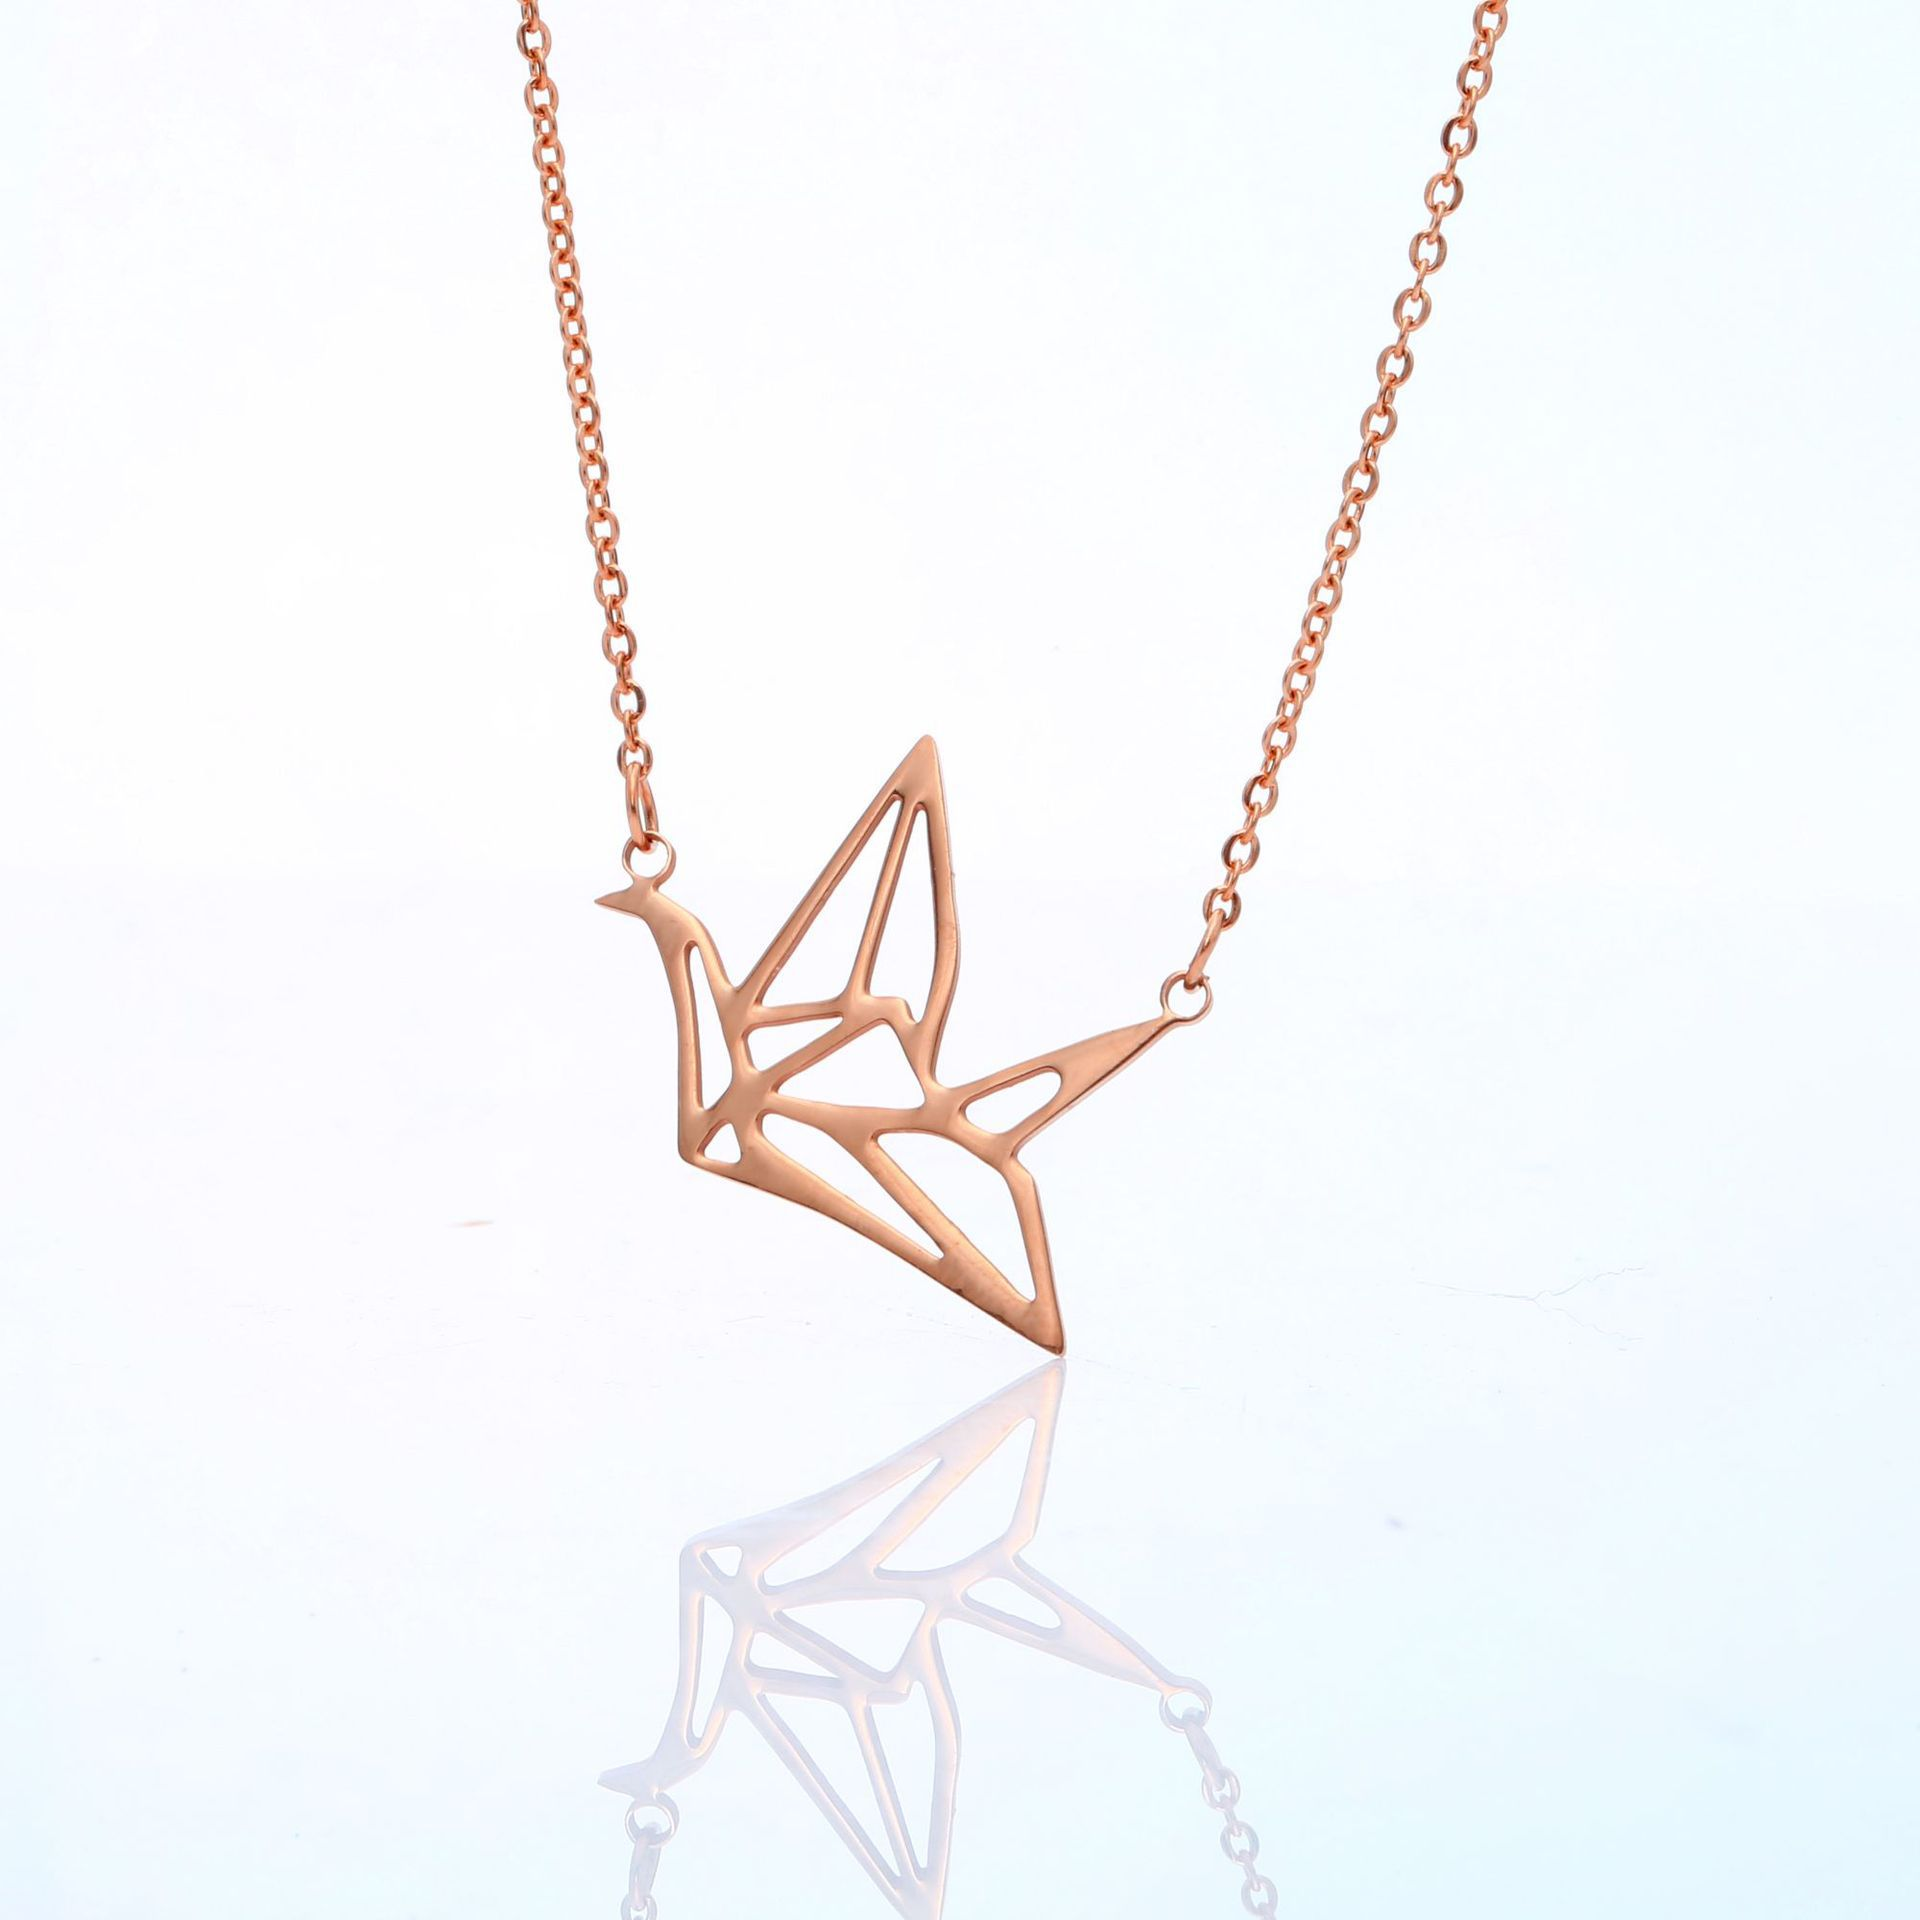 Creative Stainless Steel Hollow Paper Crane Necklace Accessories Romantic Necklace Jewelry For Ladies 6